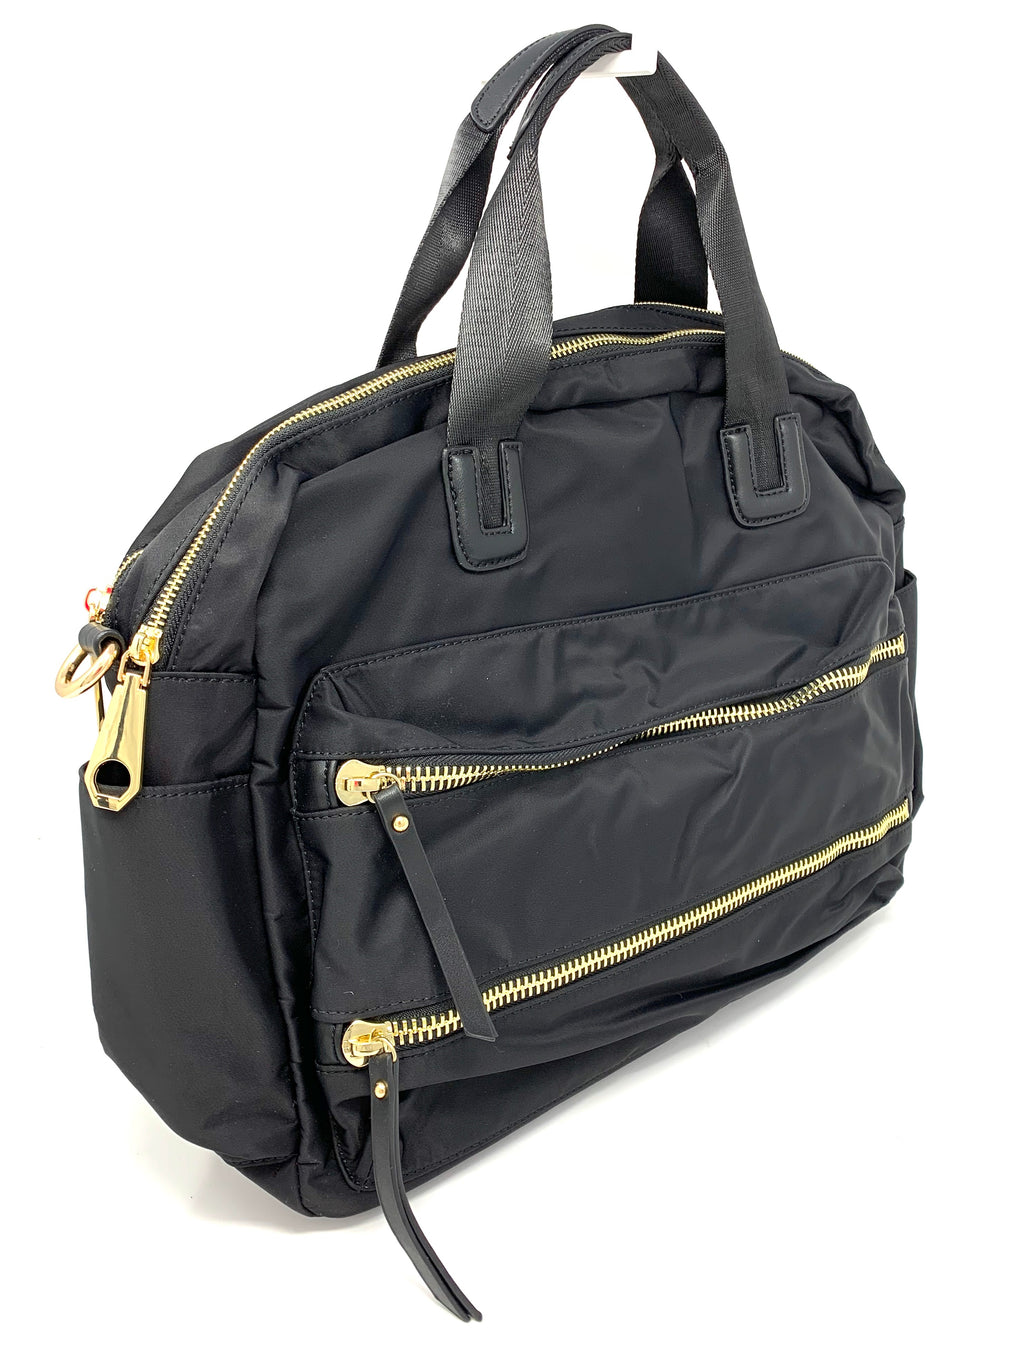 The Everything Bag in Black